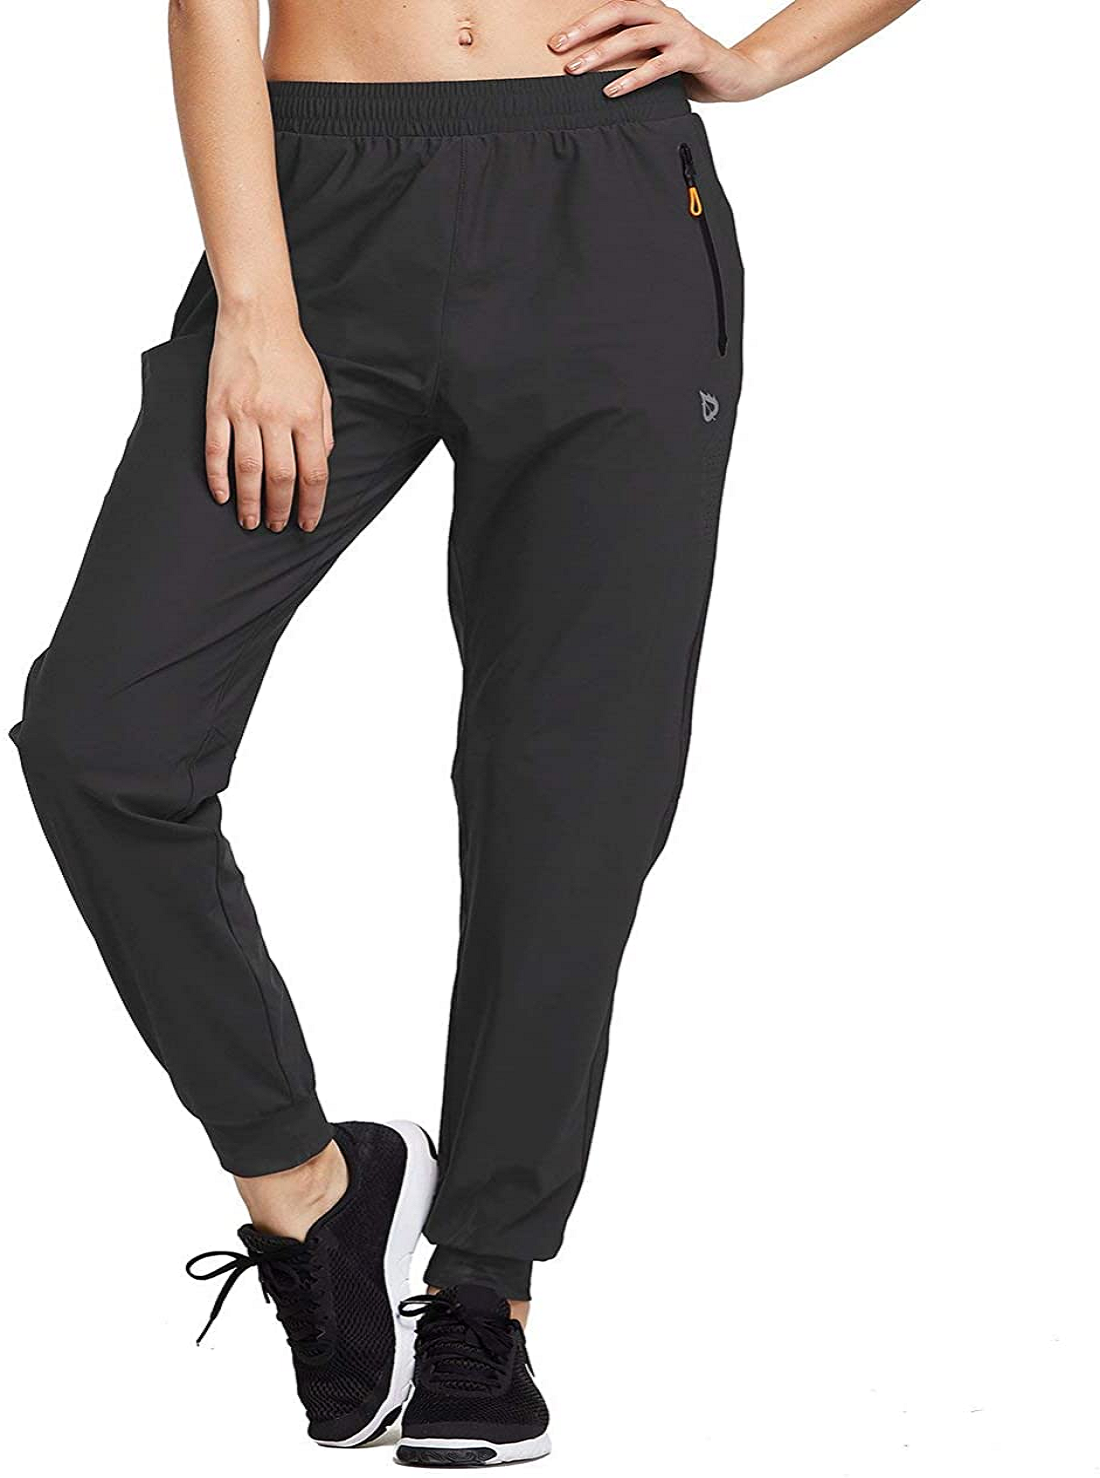 6 Wholesale Women's Jogger Pants with Pockets